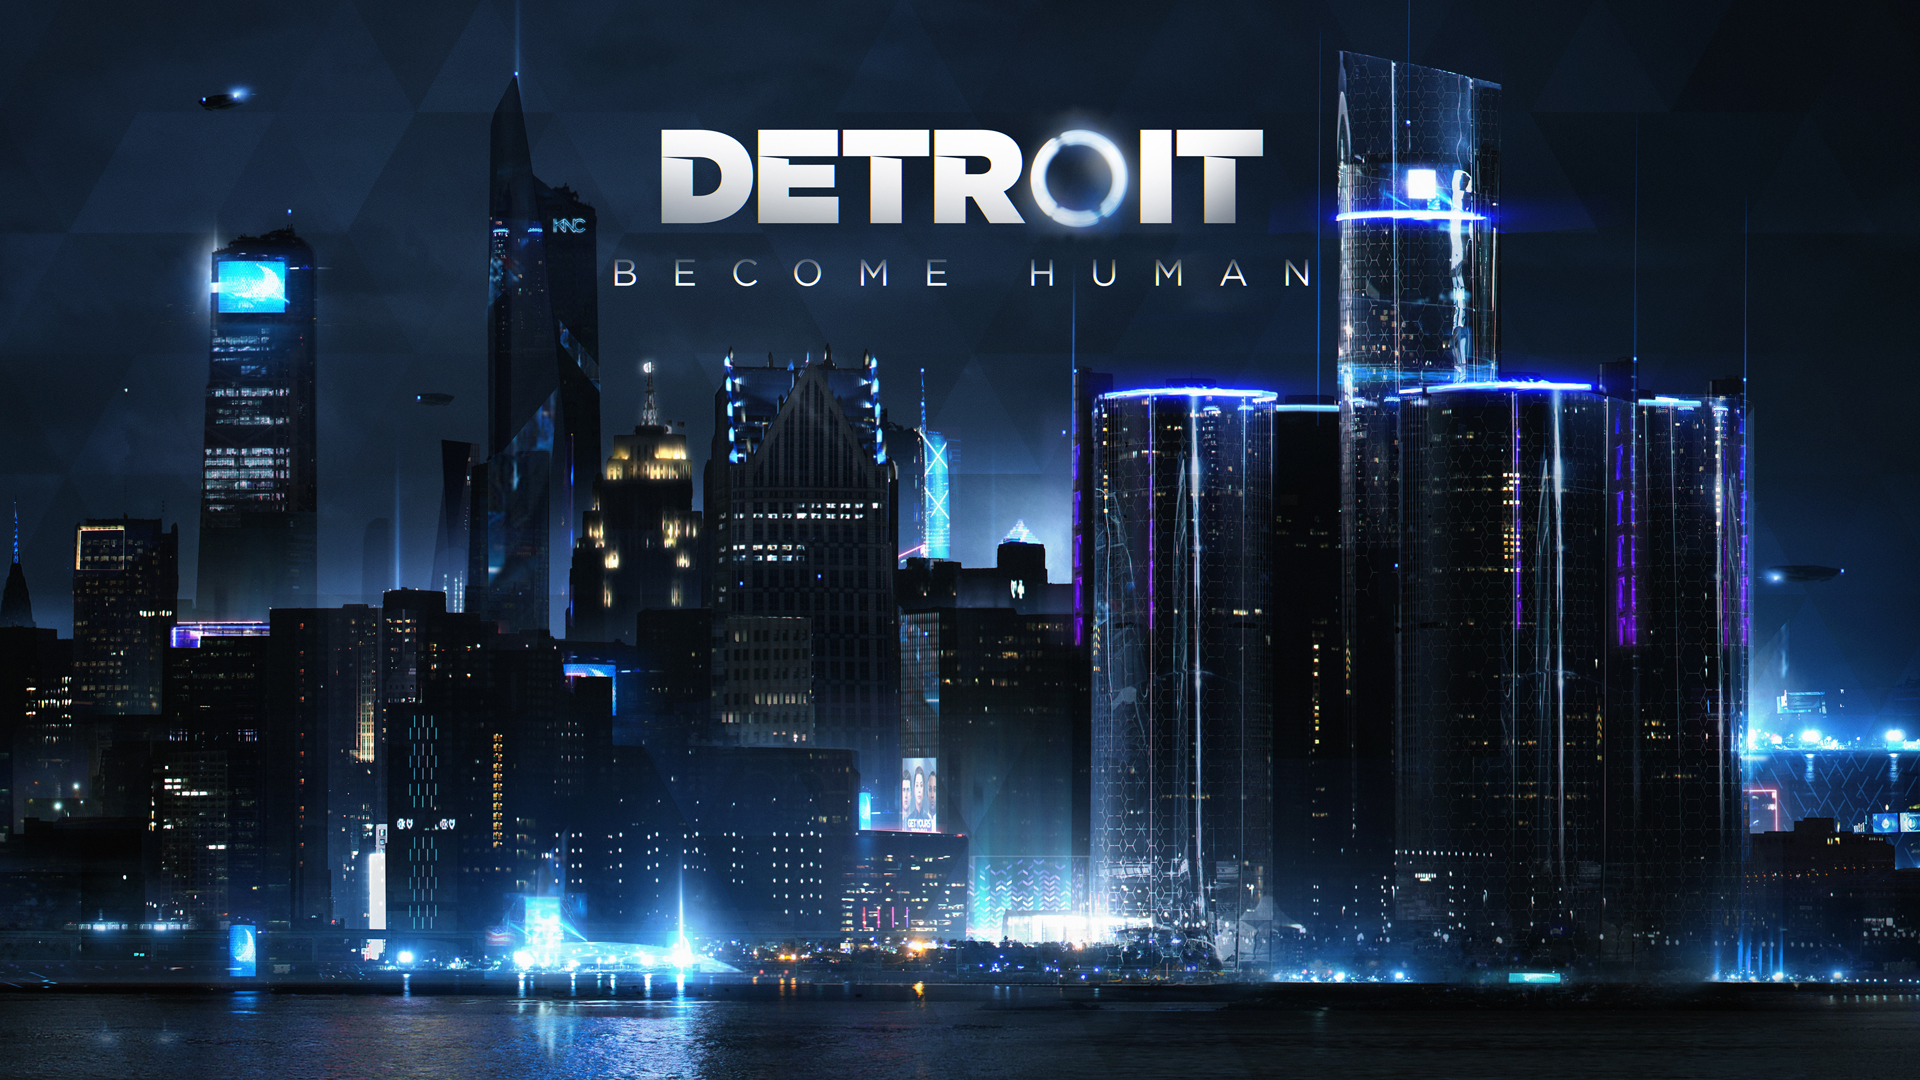 Detroit Become Human Wallpapers Wallpapers Hd